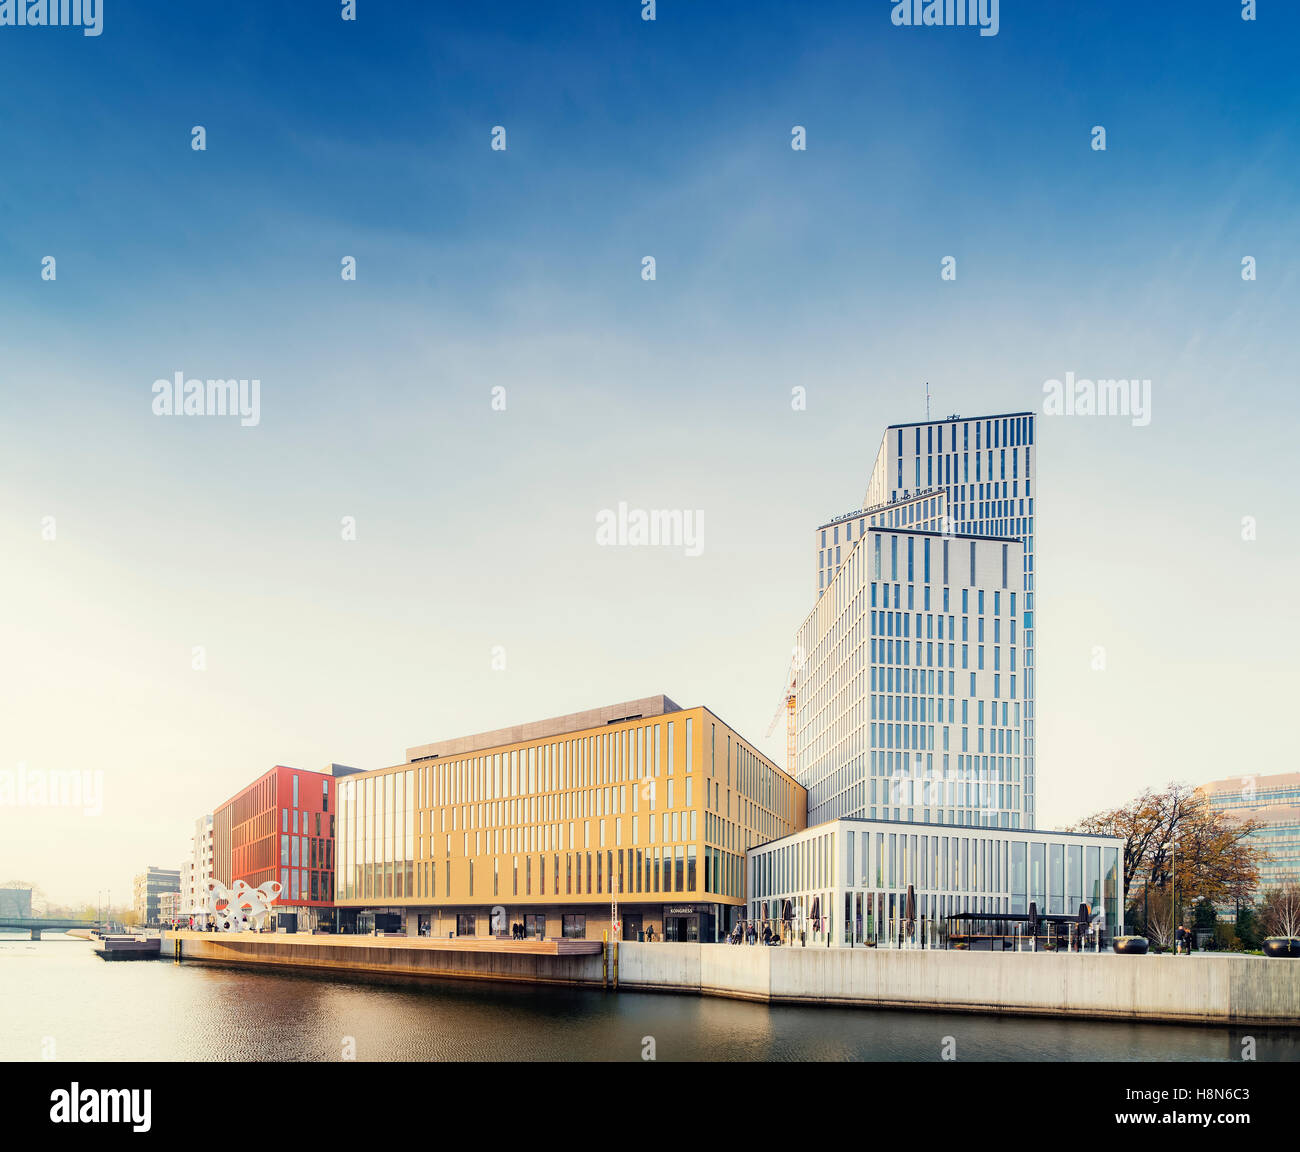 Malmo Live concert hall on sunny day, Sweden - Stock Image